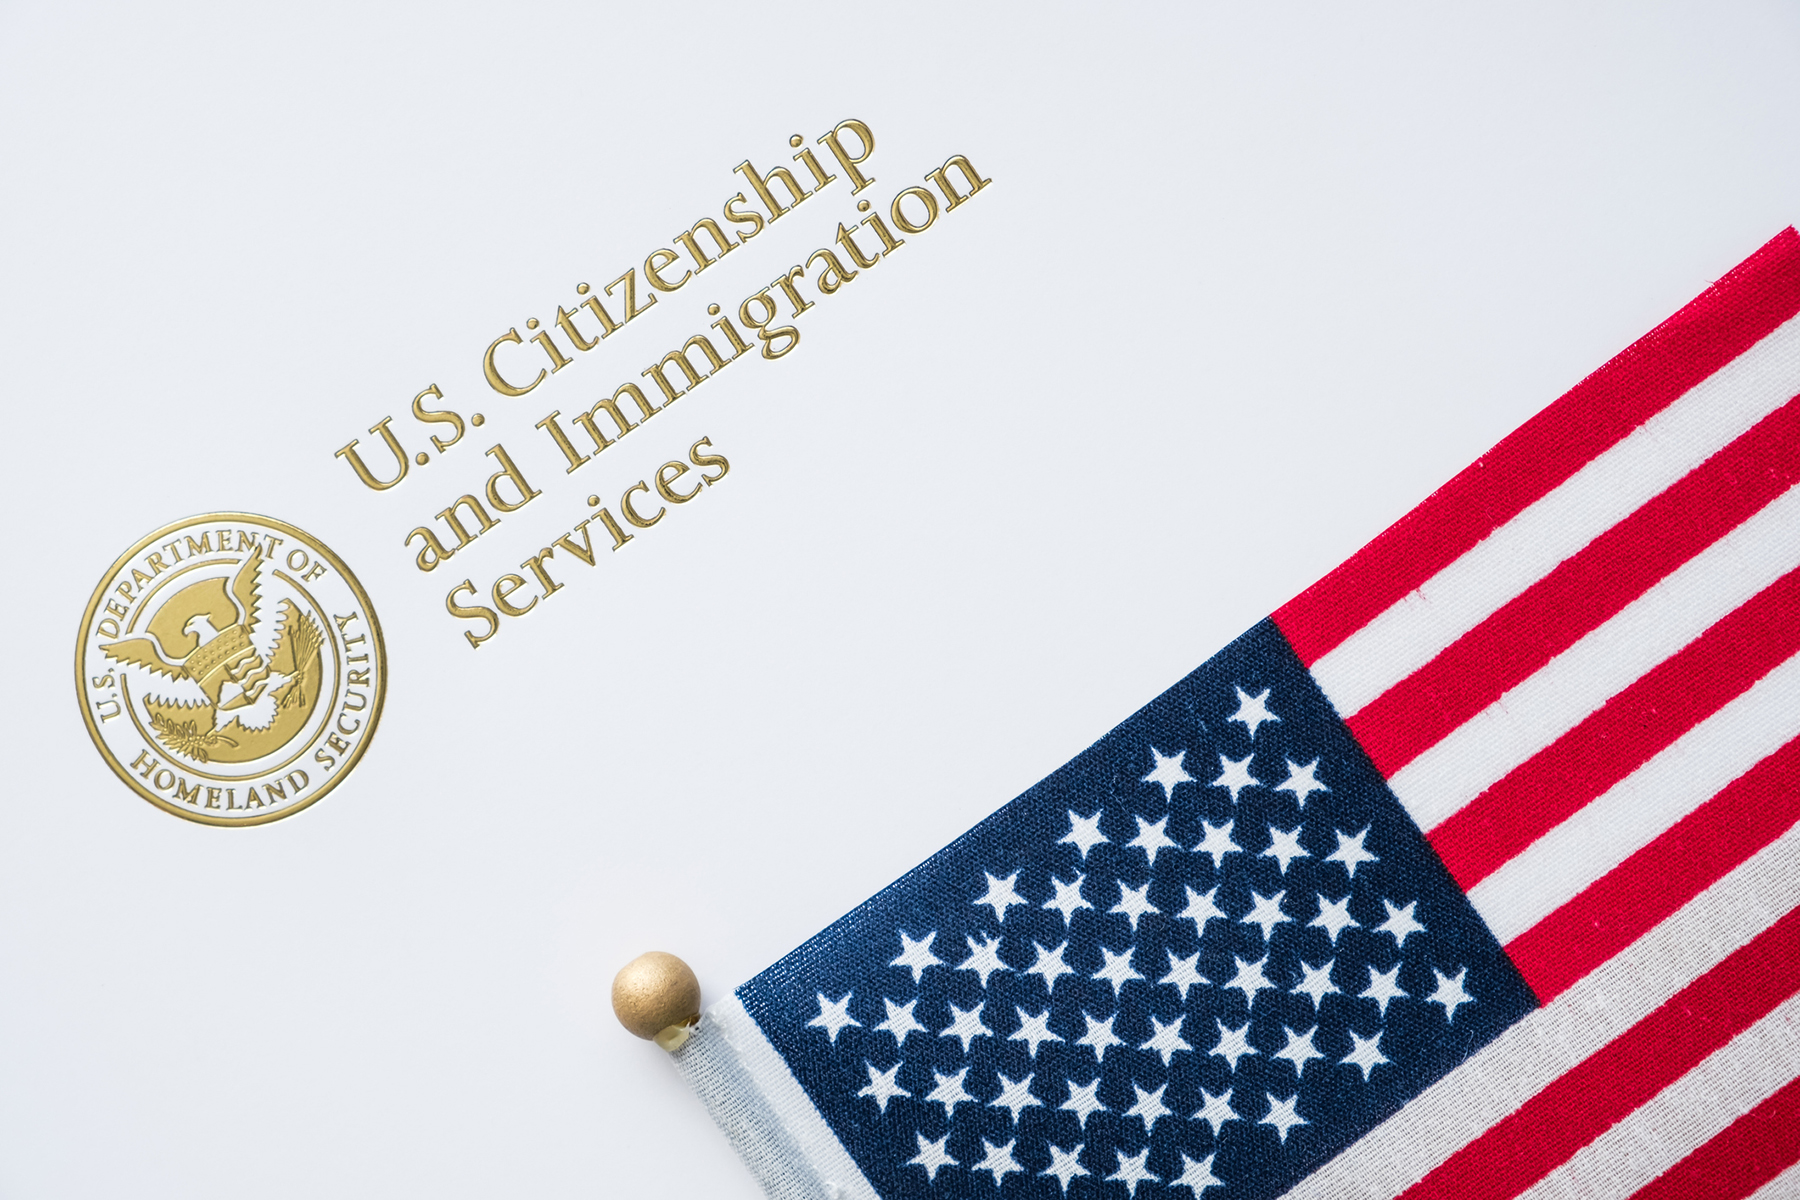 US Citizen and Immigration Services